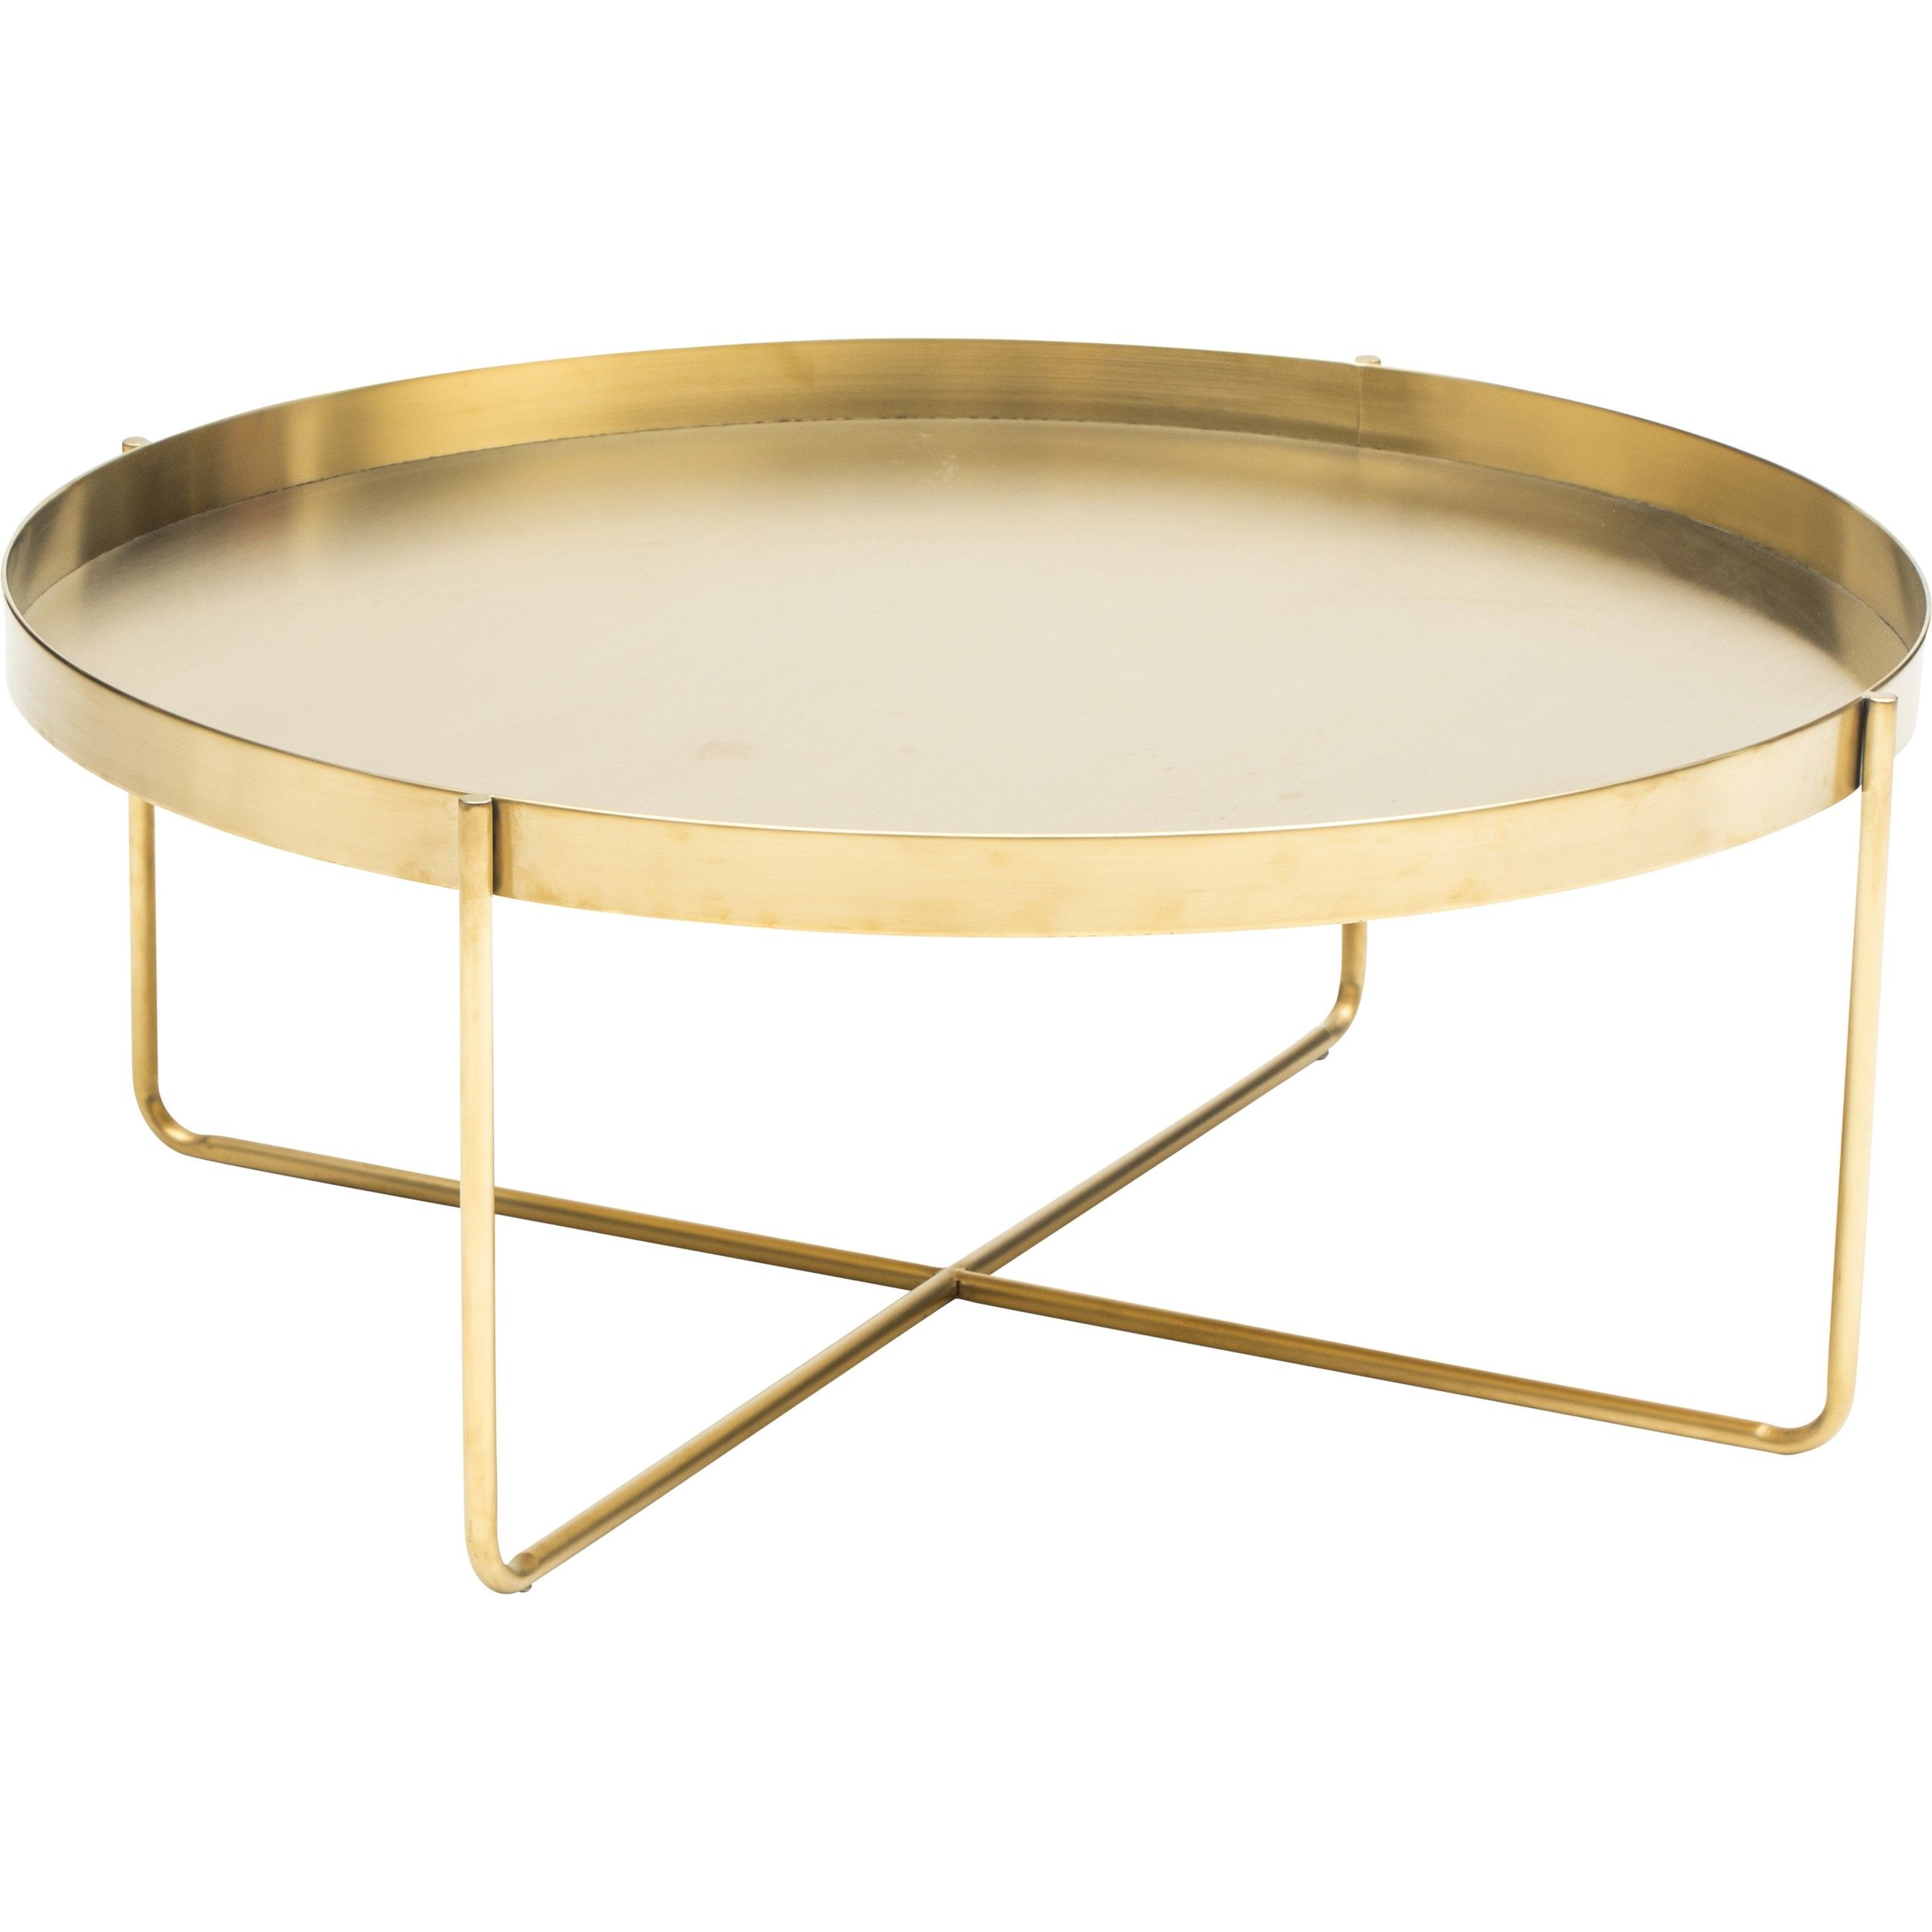 Brass Display Coffee Table: Gaultier Oval Coffee Table, Gold